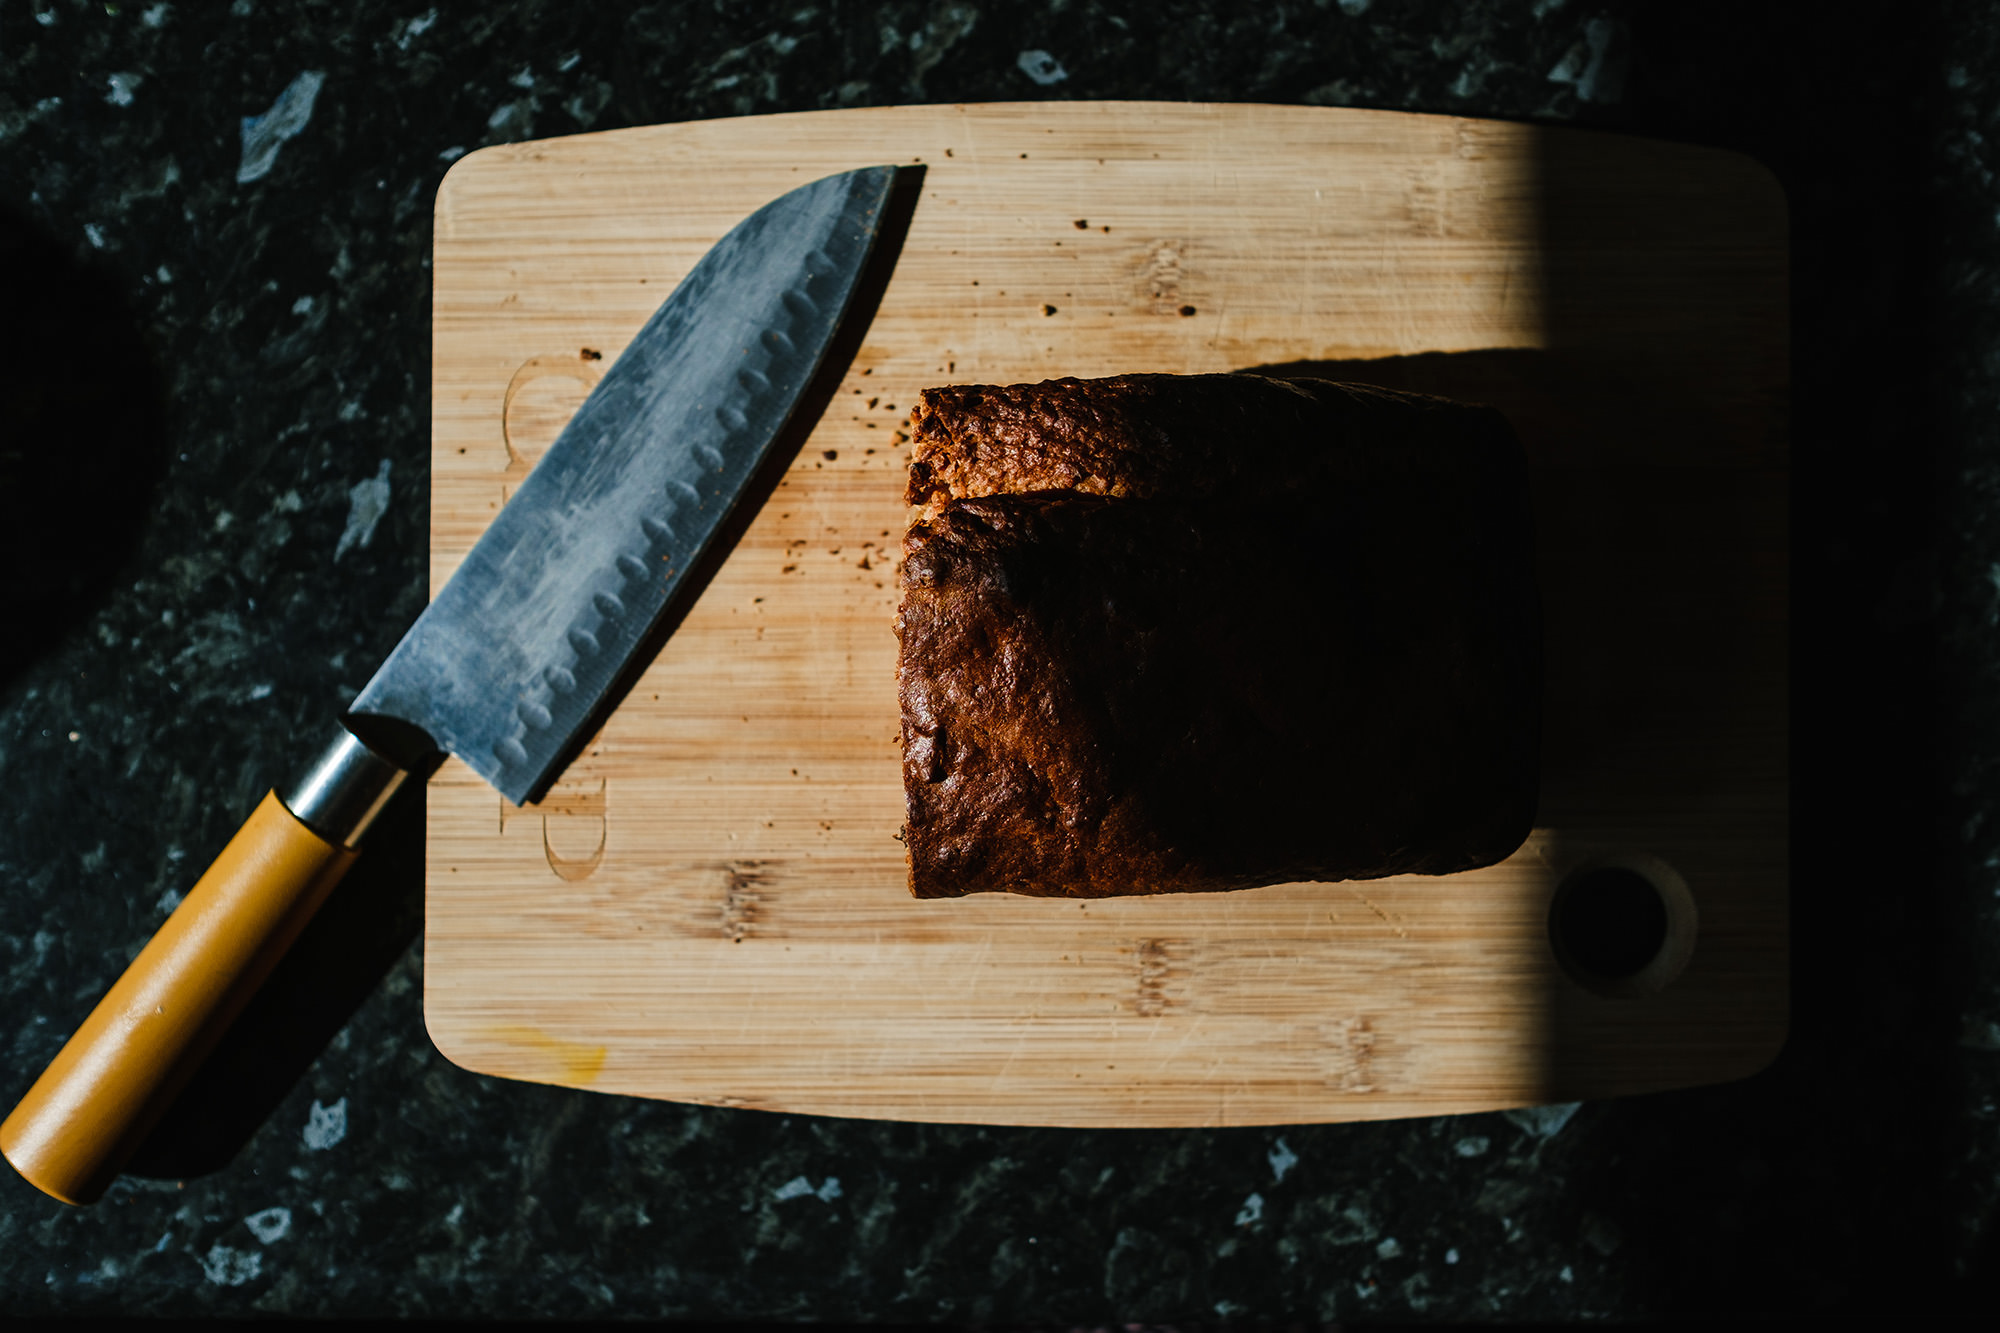 physical distancing baking banana bread